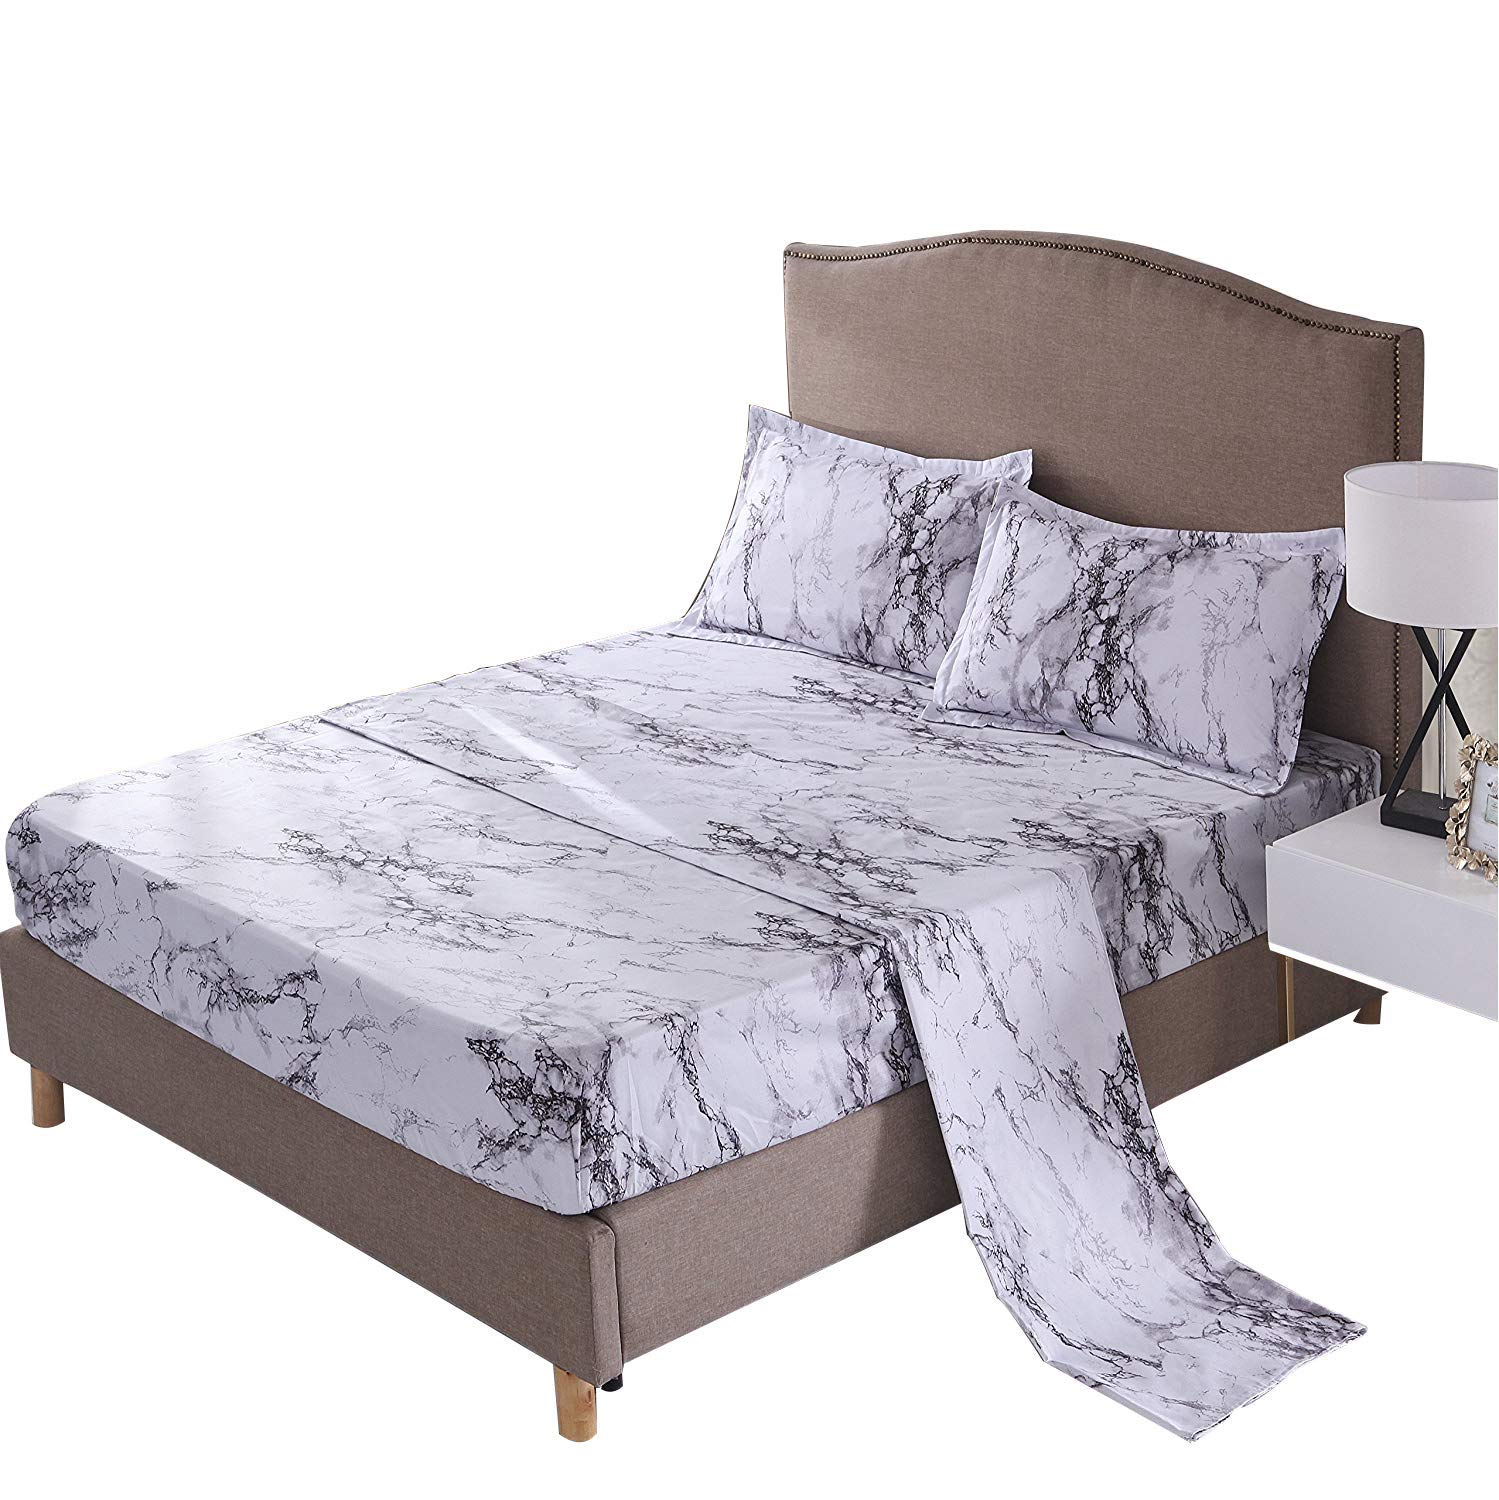 Full 1x Duvet Cover, 2X Pillow Shams WINLIFE 3D Marble Line Print Duvet Cover Include